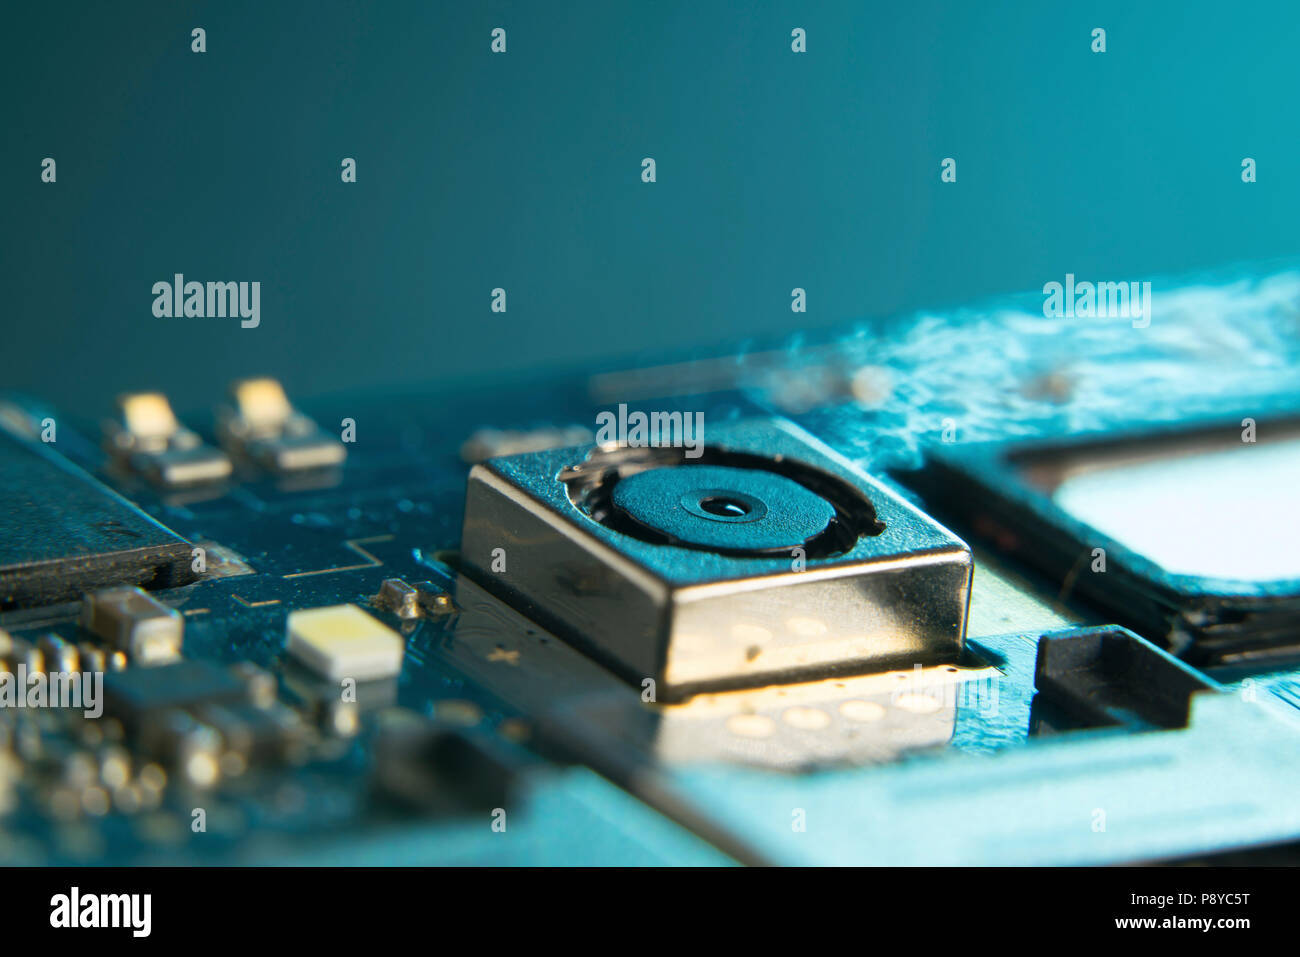 Mobile Phone Circuit Board Stock Photo 212043940 Alamy Cell